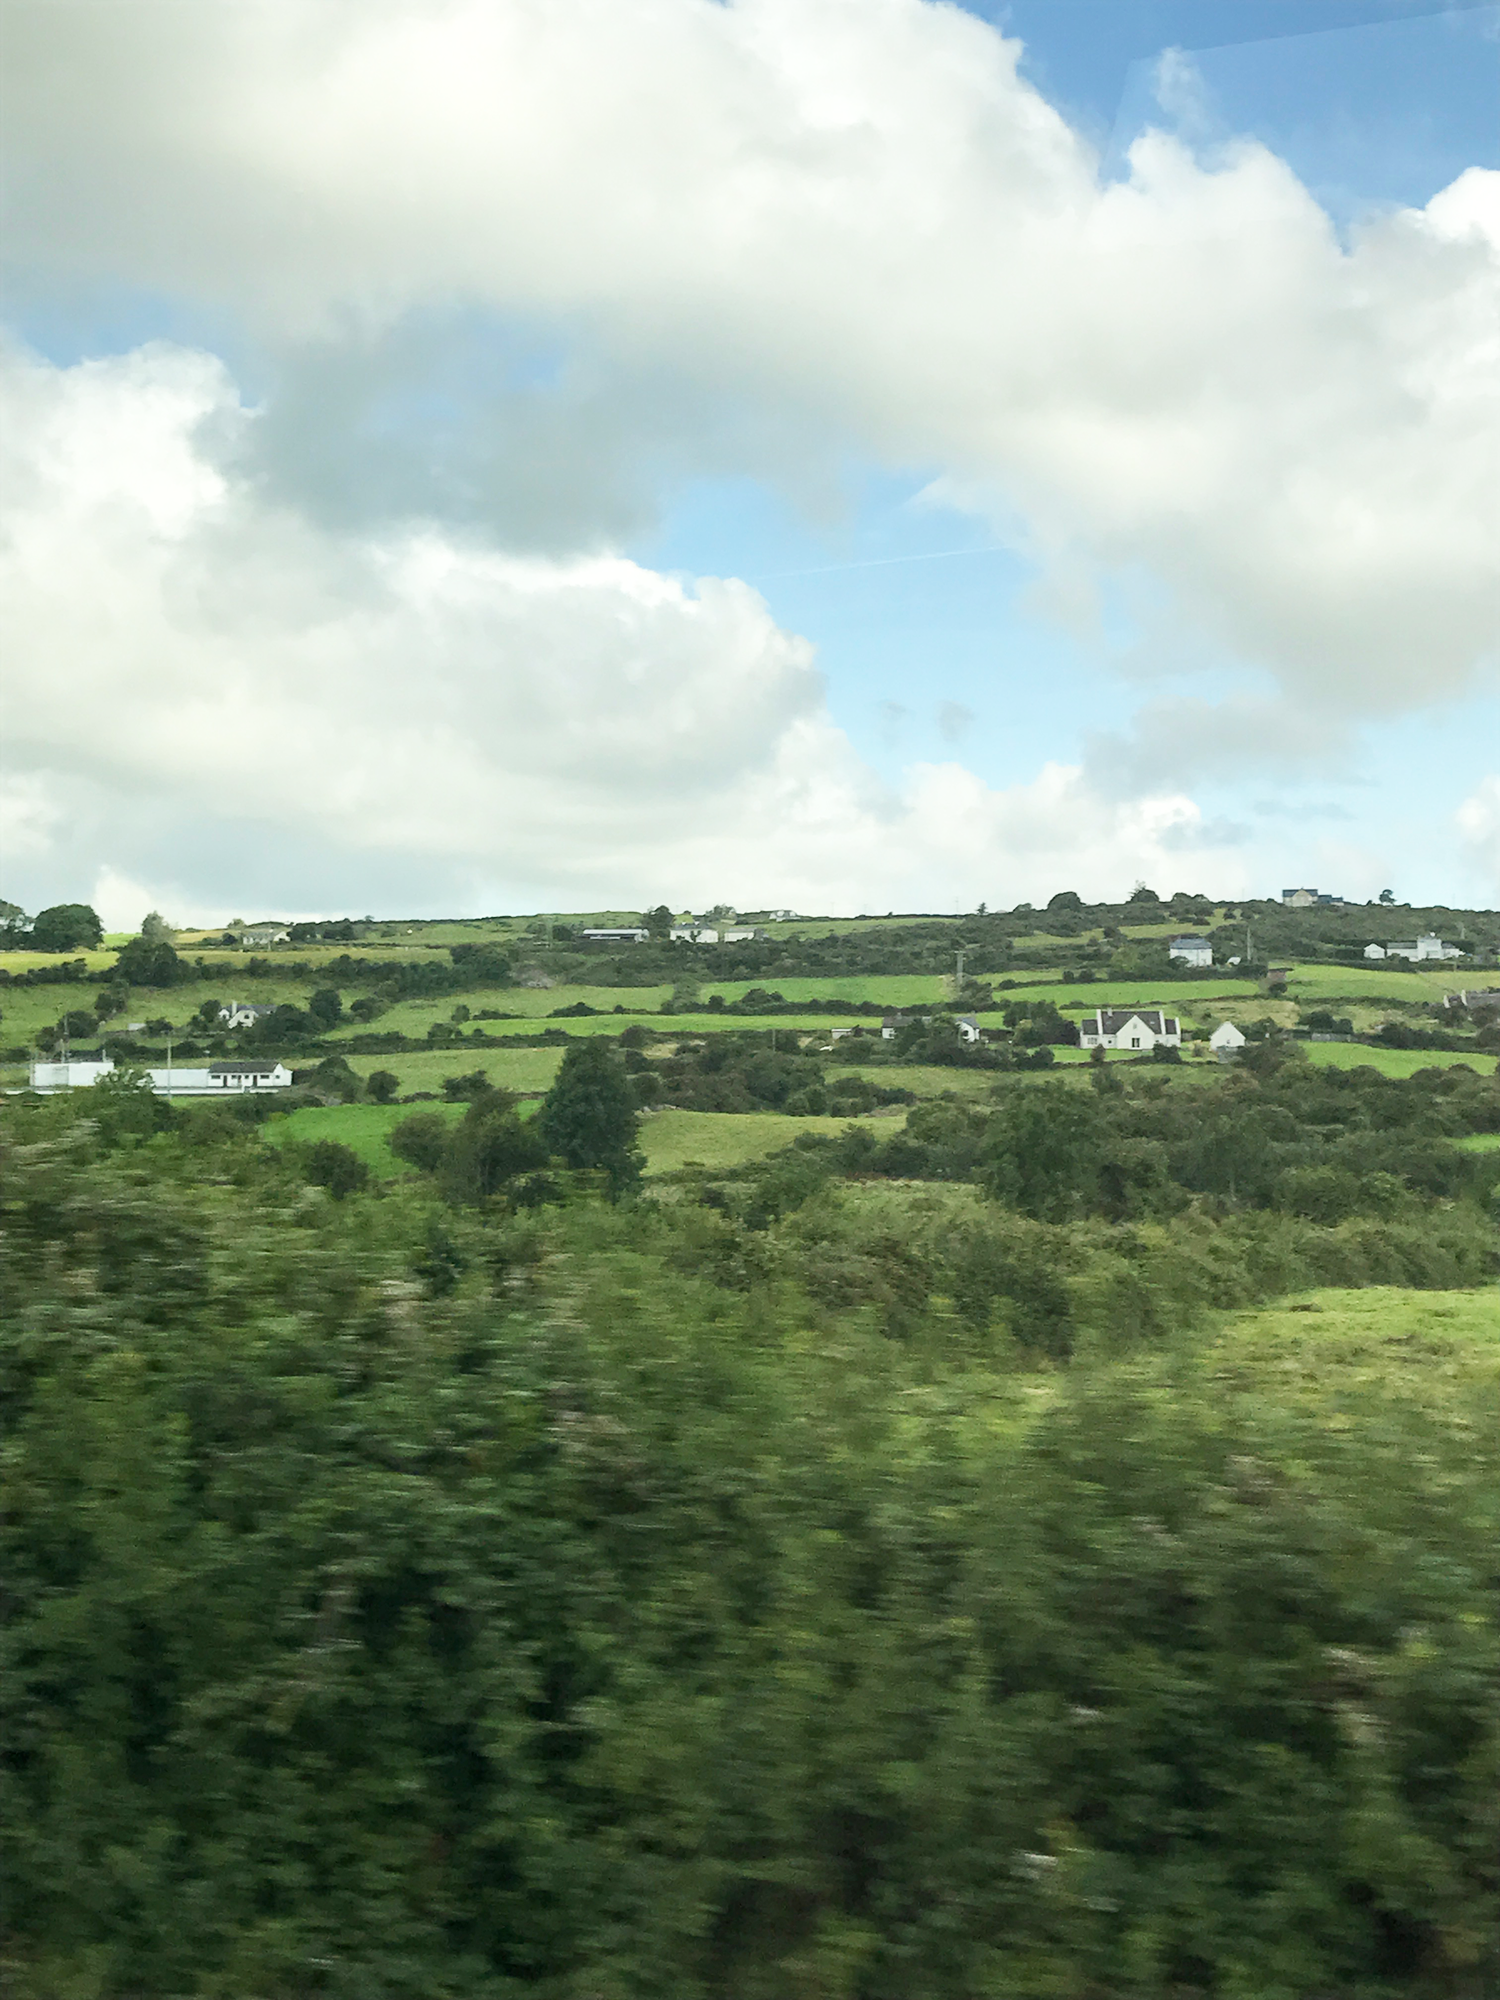 The view out my window on the bus. Also (not pictured), I've never seen so many cows and sheep in my life.